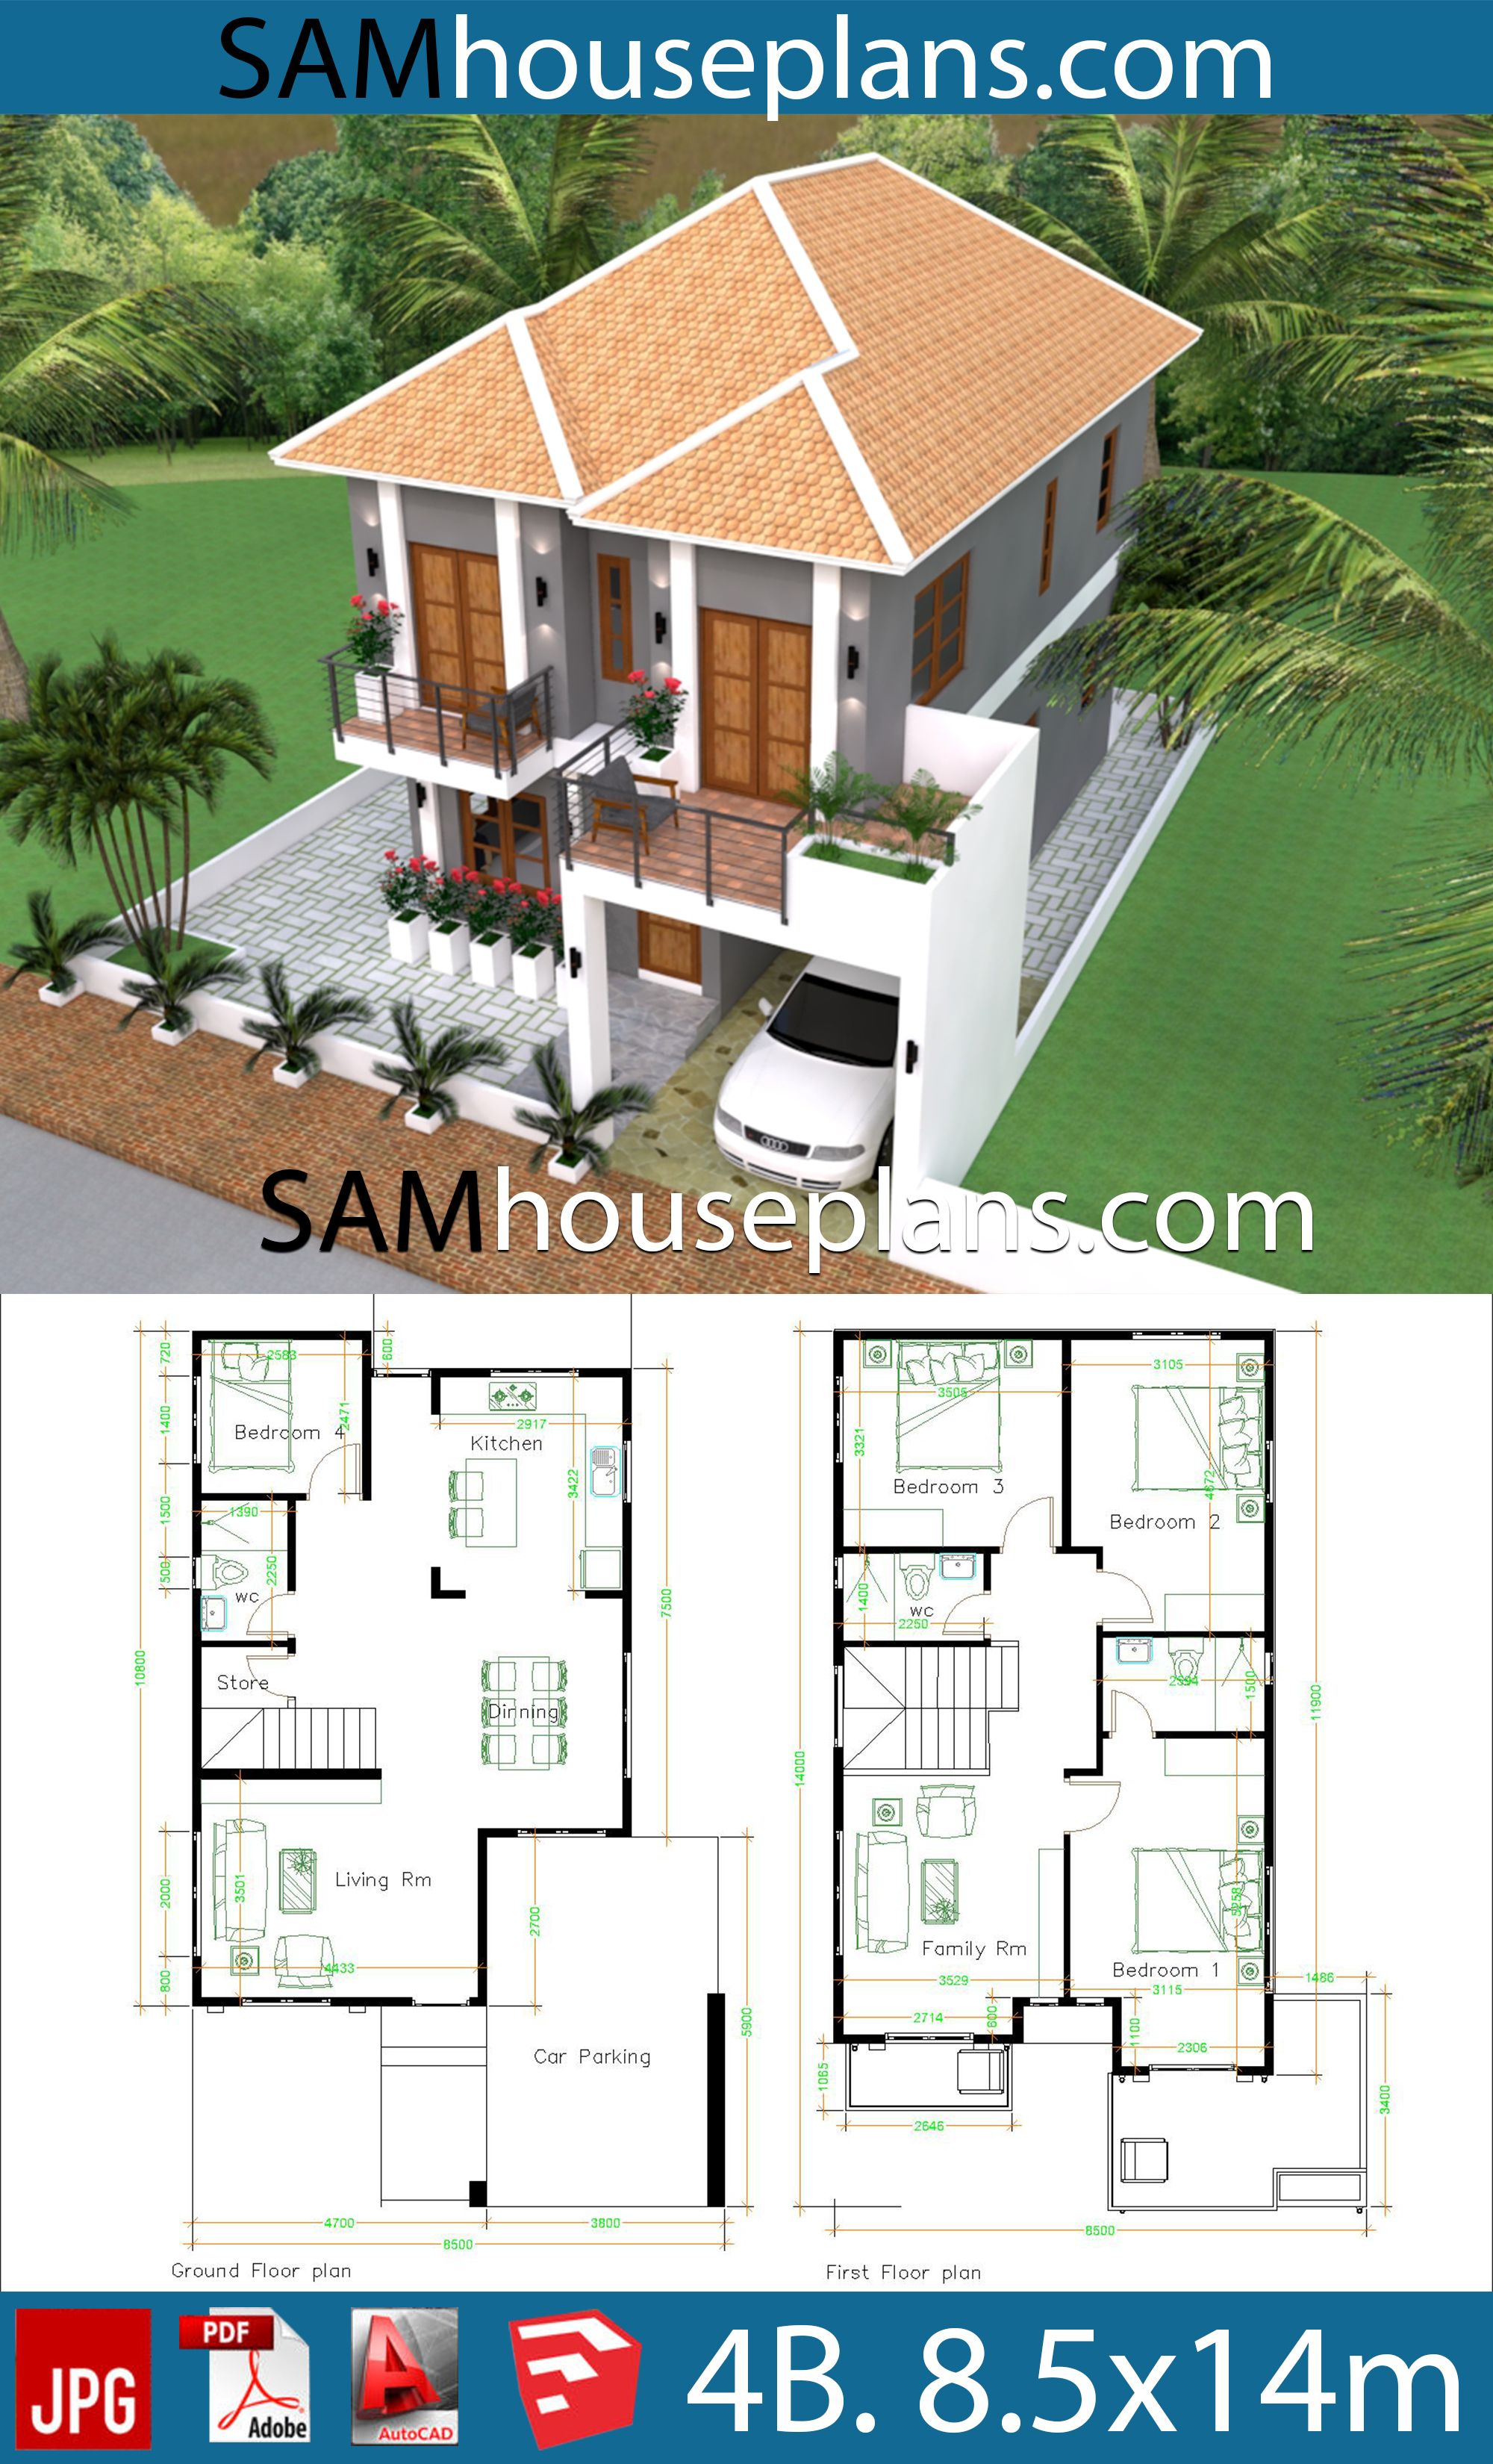 House Plans 8 5x14 With 4 Bedrooms House Plans Free Downloads Architectural Design House Plans Dream House Plans House Front Design